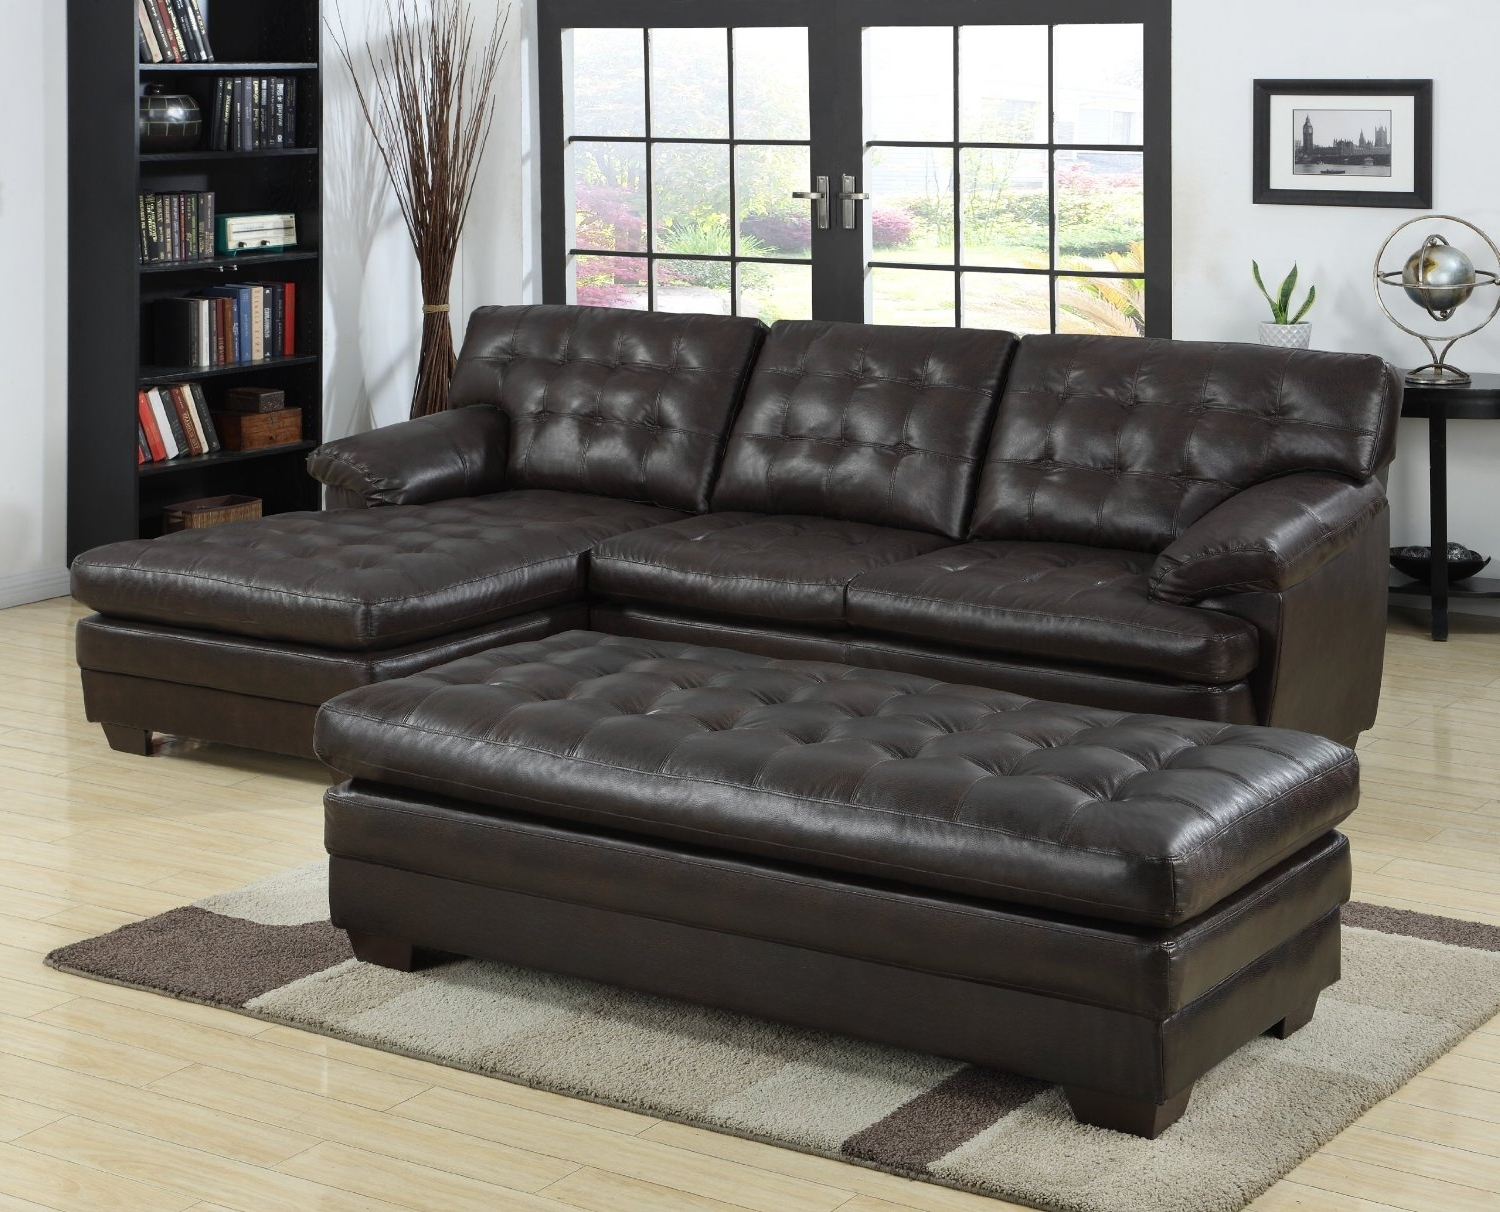 Famous Tufted Sectionals With Chaise With Black Tufted Leather Sectional Sofa With Chaise And Bench Seat (View 9 of 15)